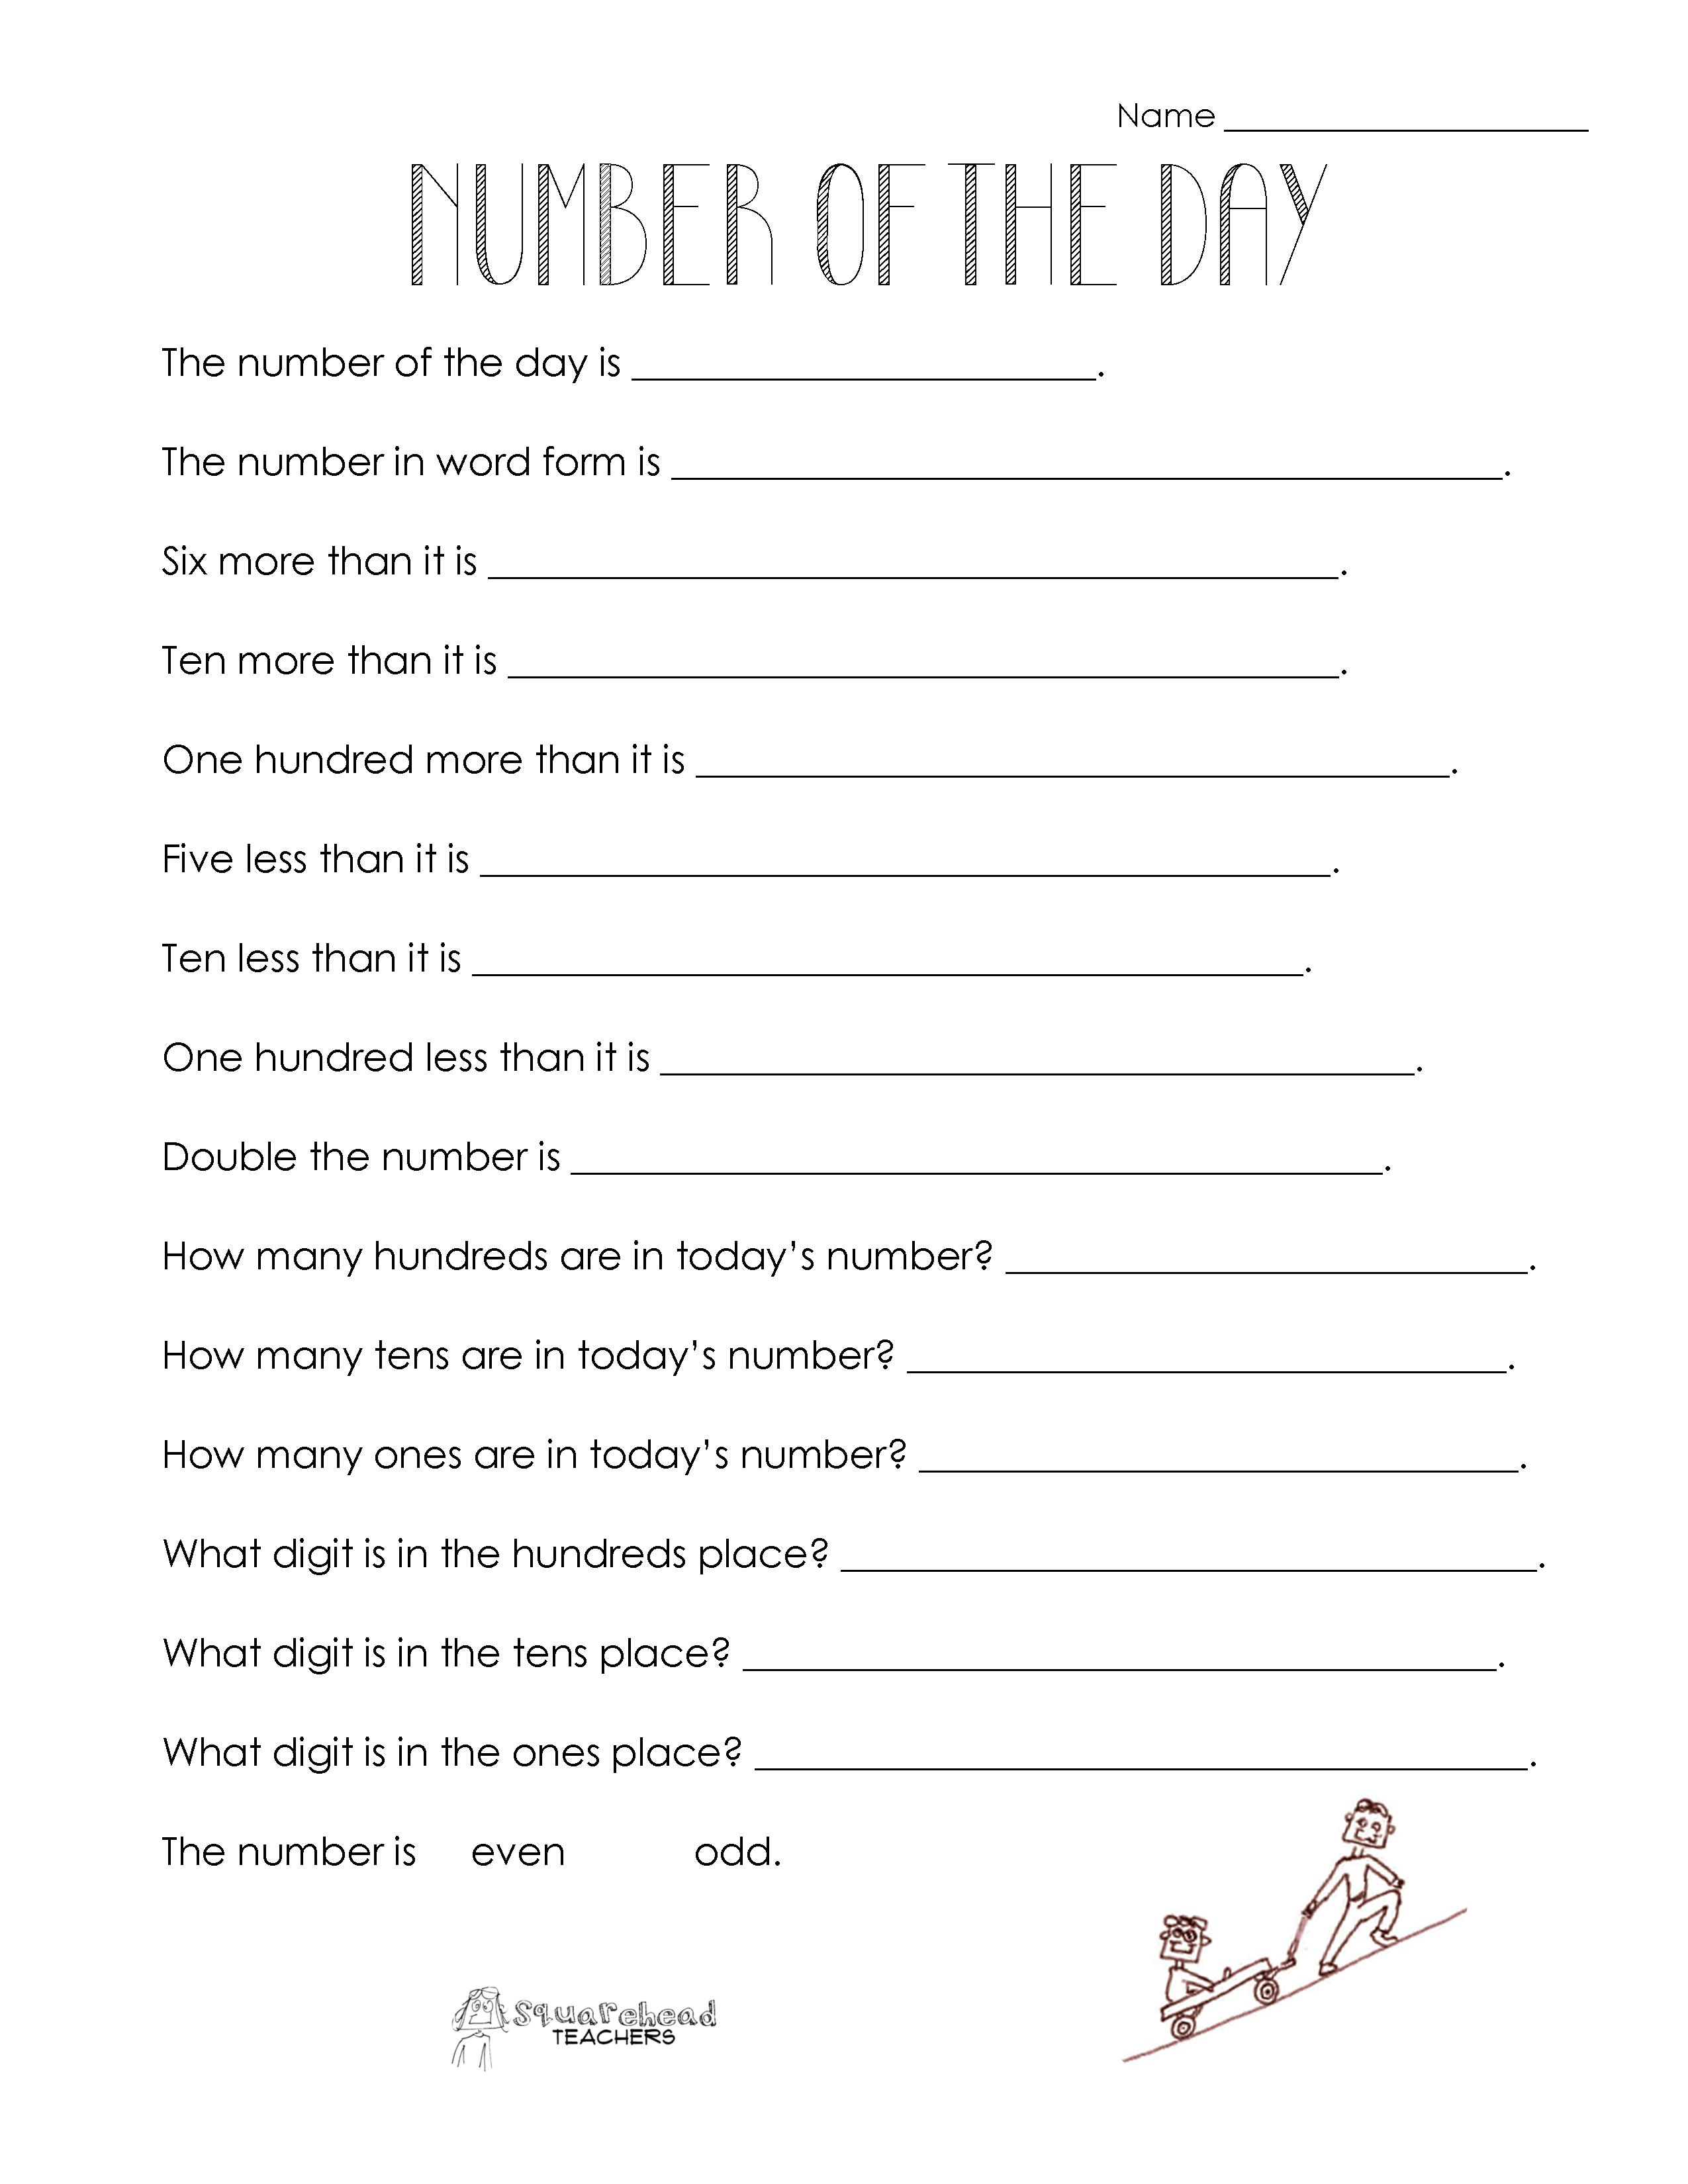 worksheet Teachers Worksheet number of the day worksheet collection math pinterest squarehead teachers free printable worksheets for starts out very simple kindergarten